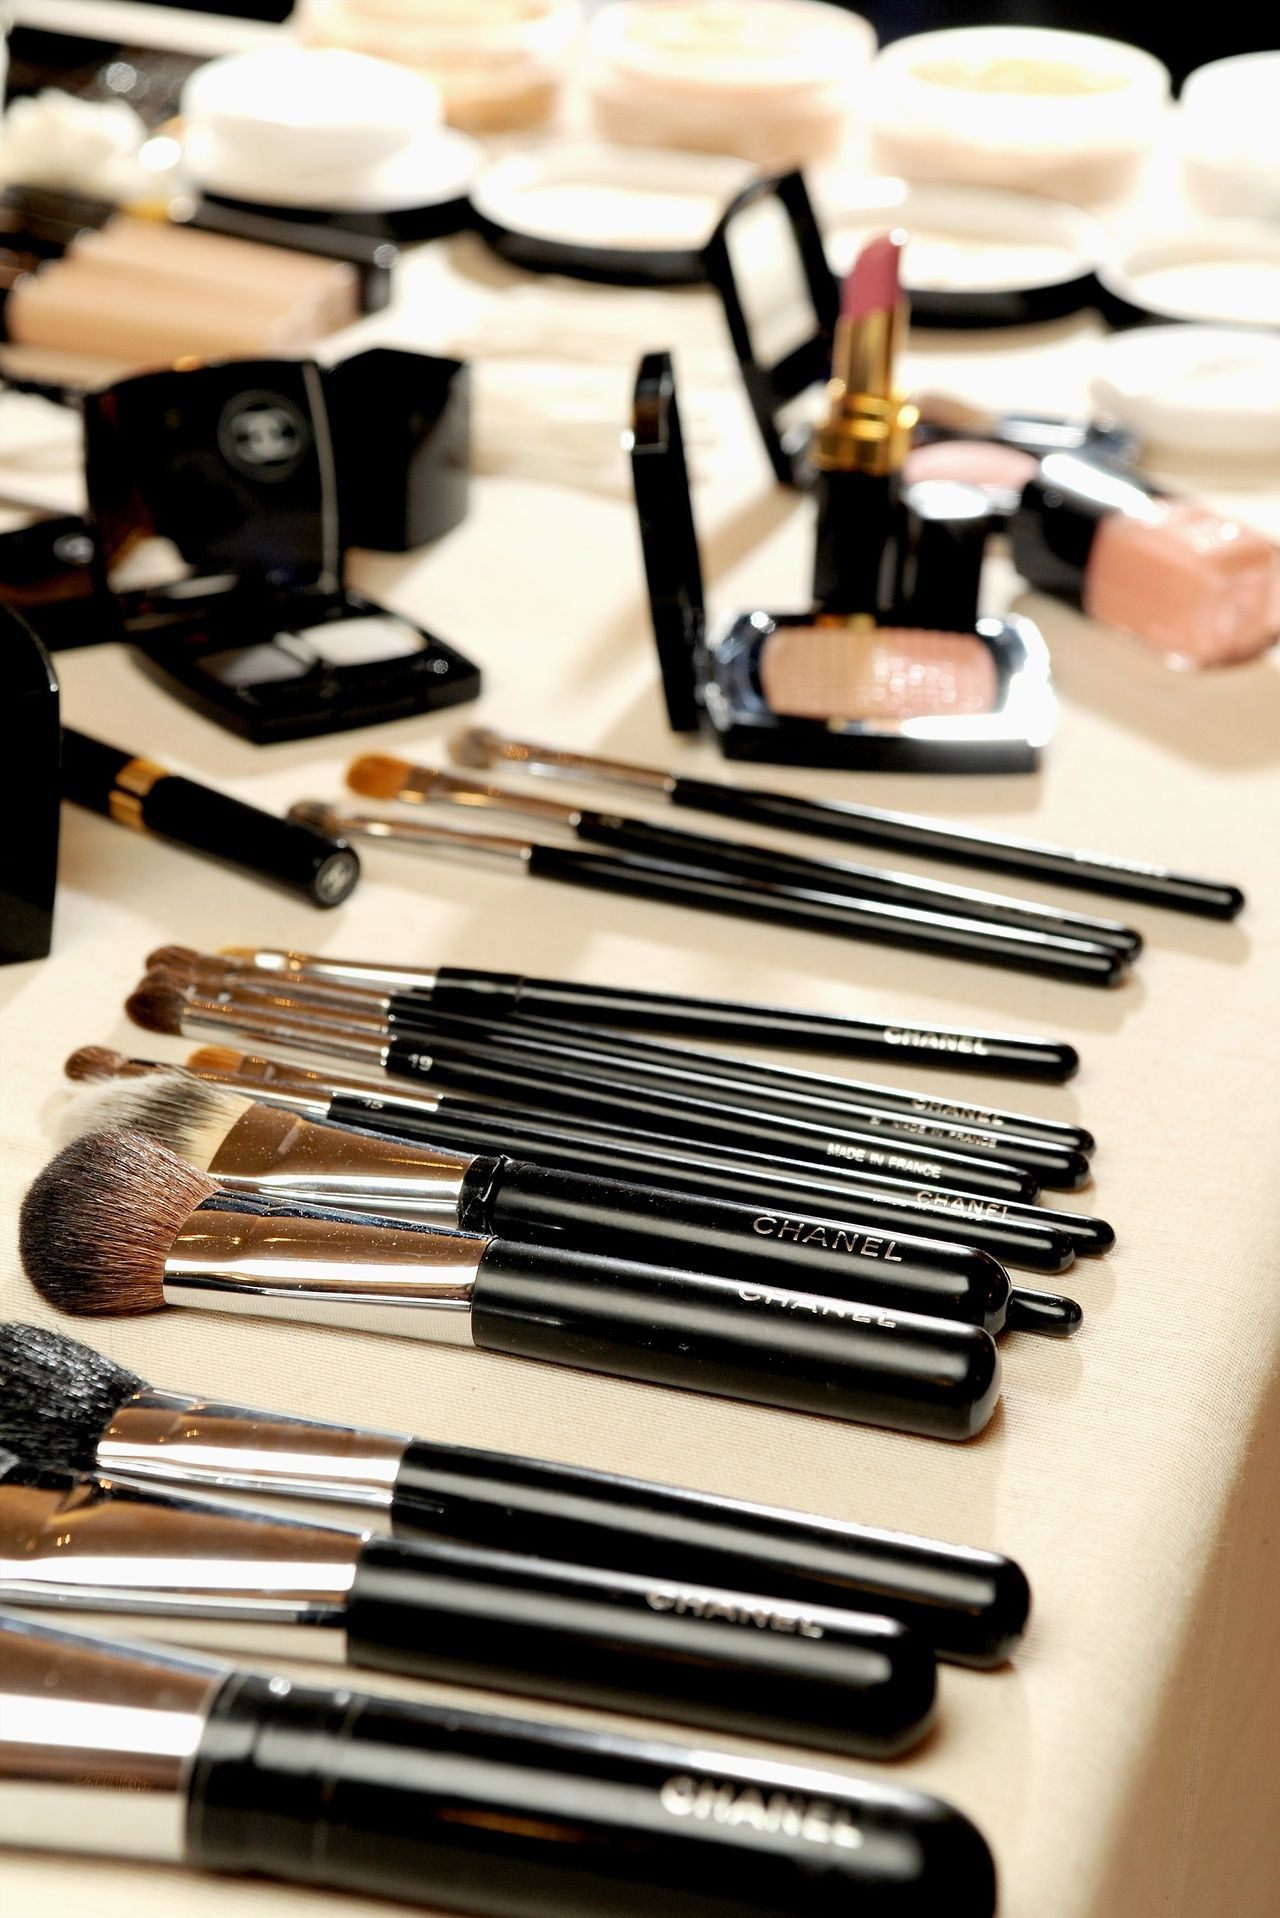 Now THIS is my temple ) Makeup collection, Chanel brushes